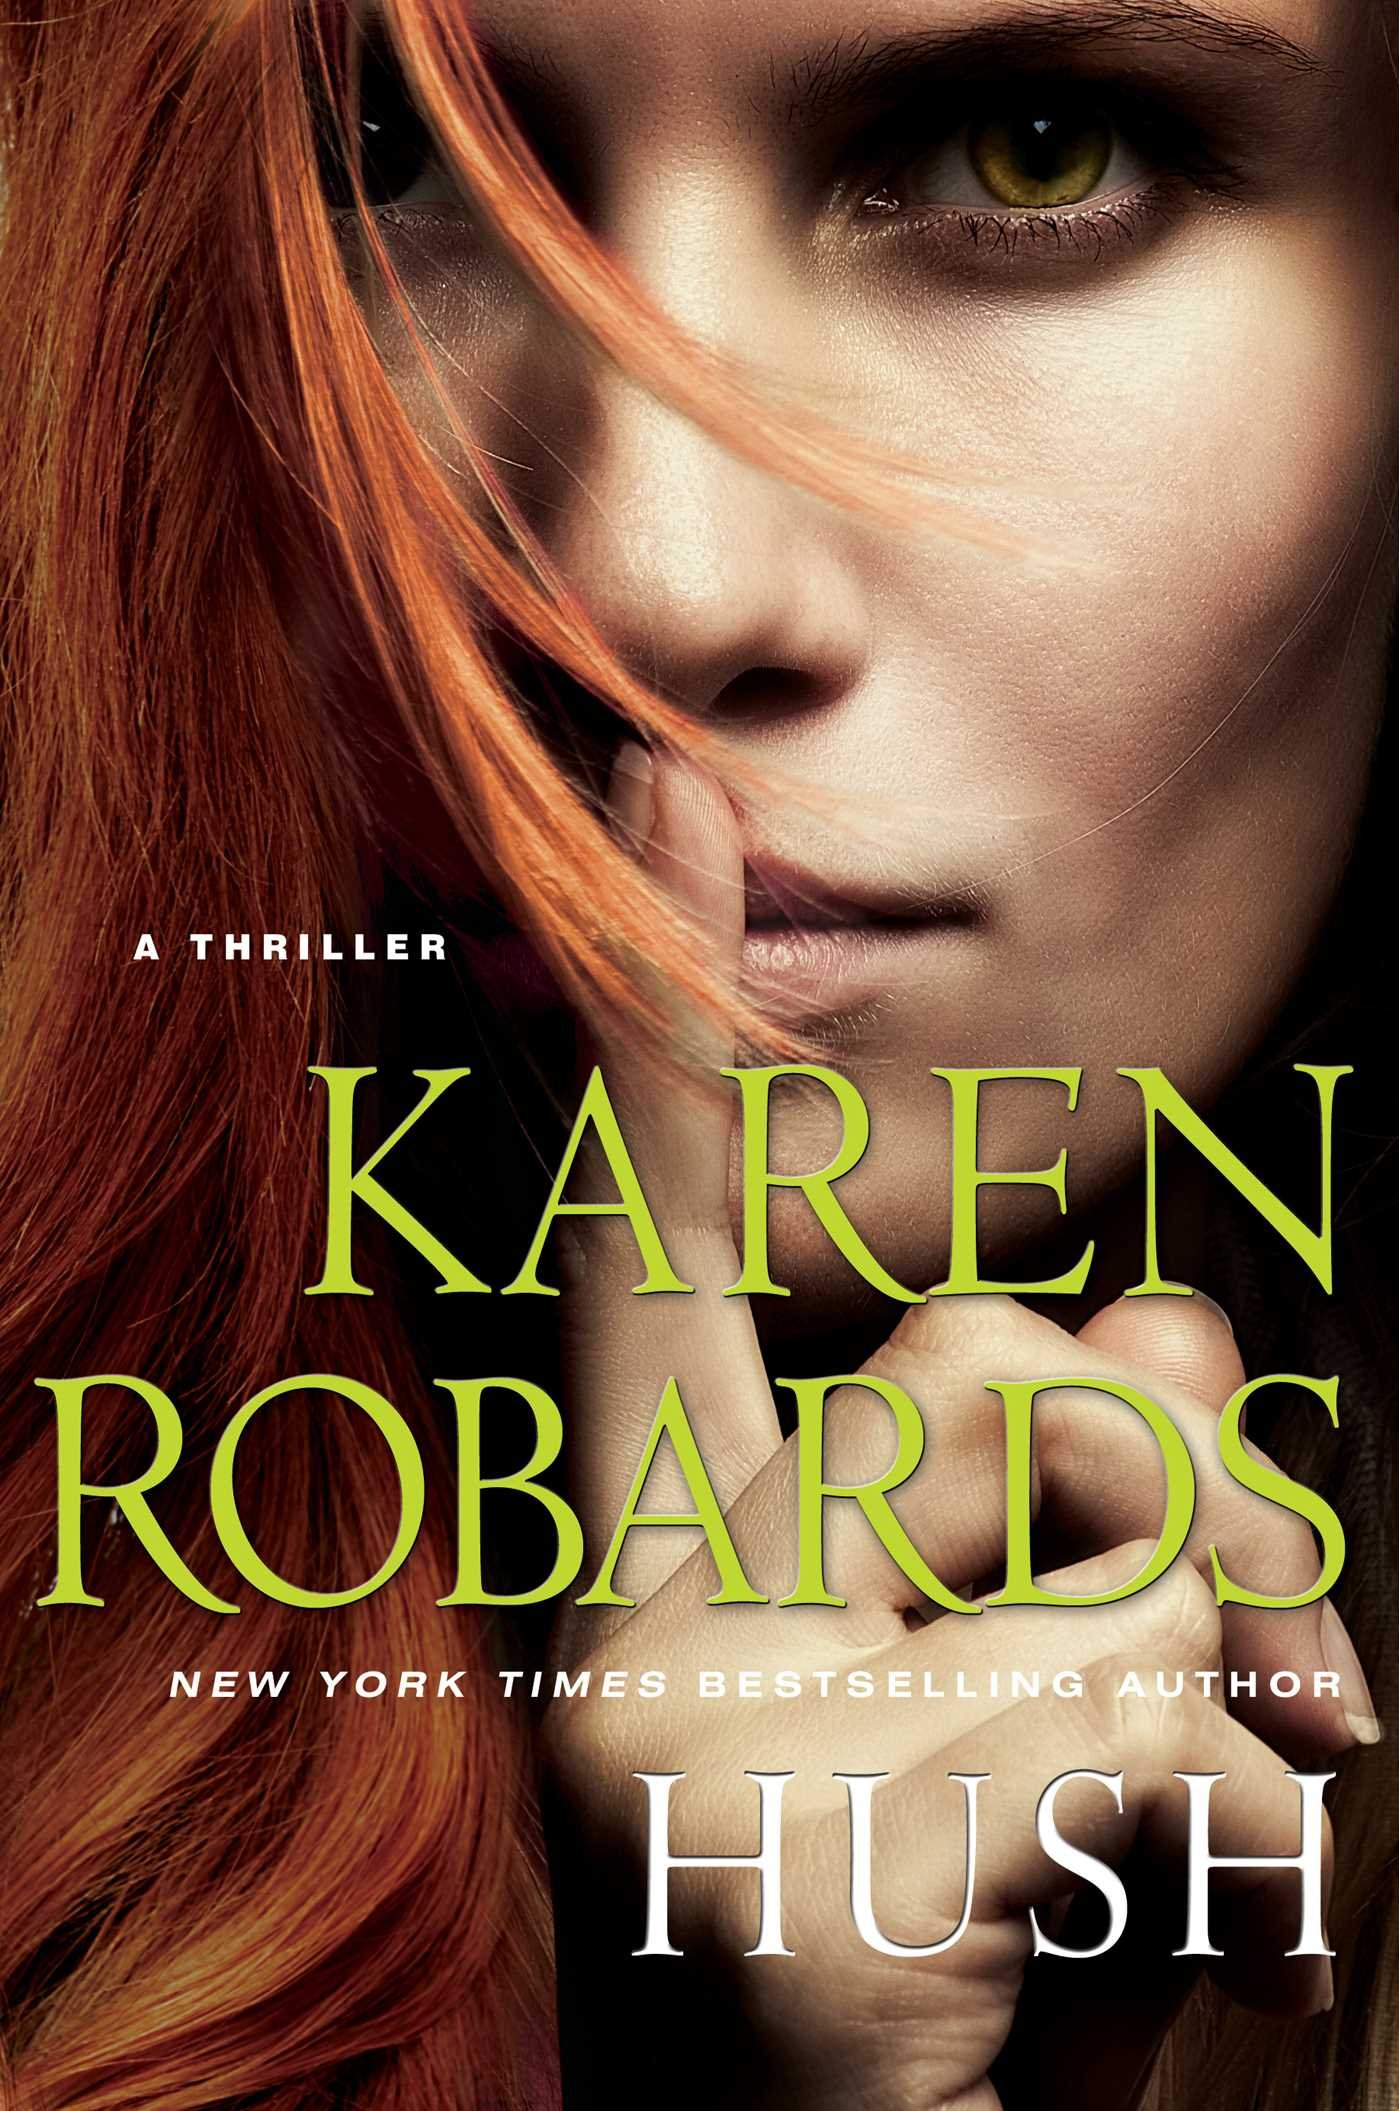 Hush by Karen Robards